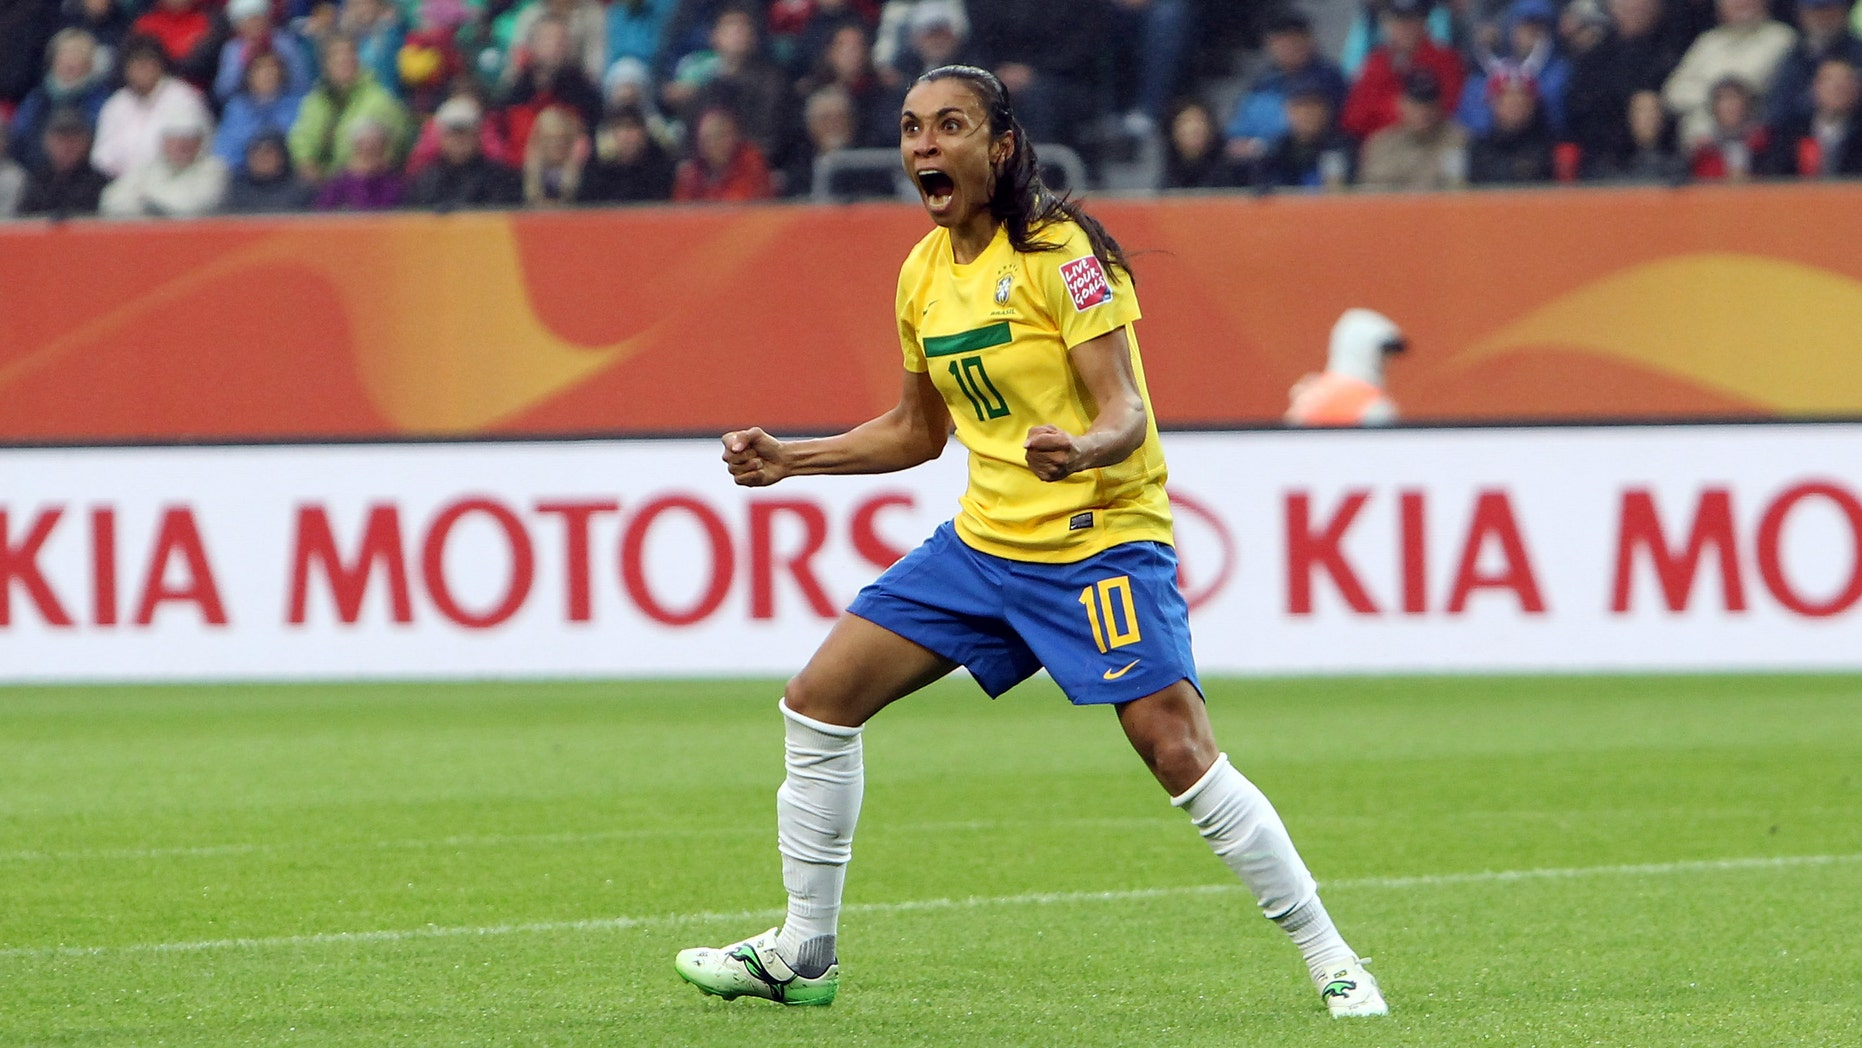 WOLFSBURG, GERMANY - JULY 03: Marta of Brazil celebrates after she scores her team's openin goal during the FIFA Women's World Cup 2011 Group D match between Brazil and Norway at Wolfsburg Arena on July 3, 2011 in Wolfsburg, Germany. (Photo by Martin Rose/Bongarts/Getty Images)